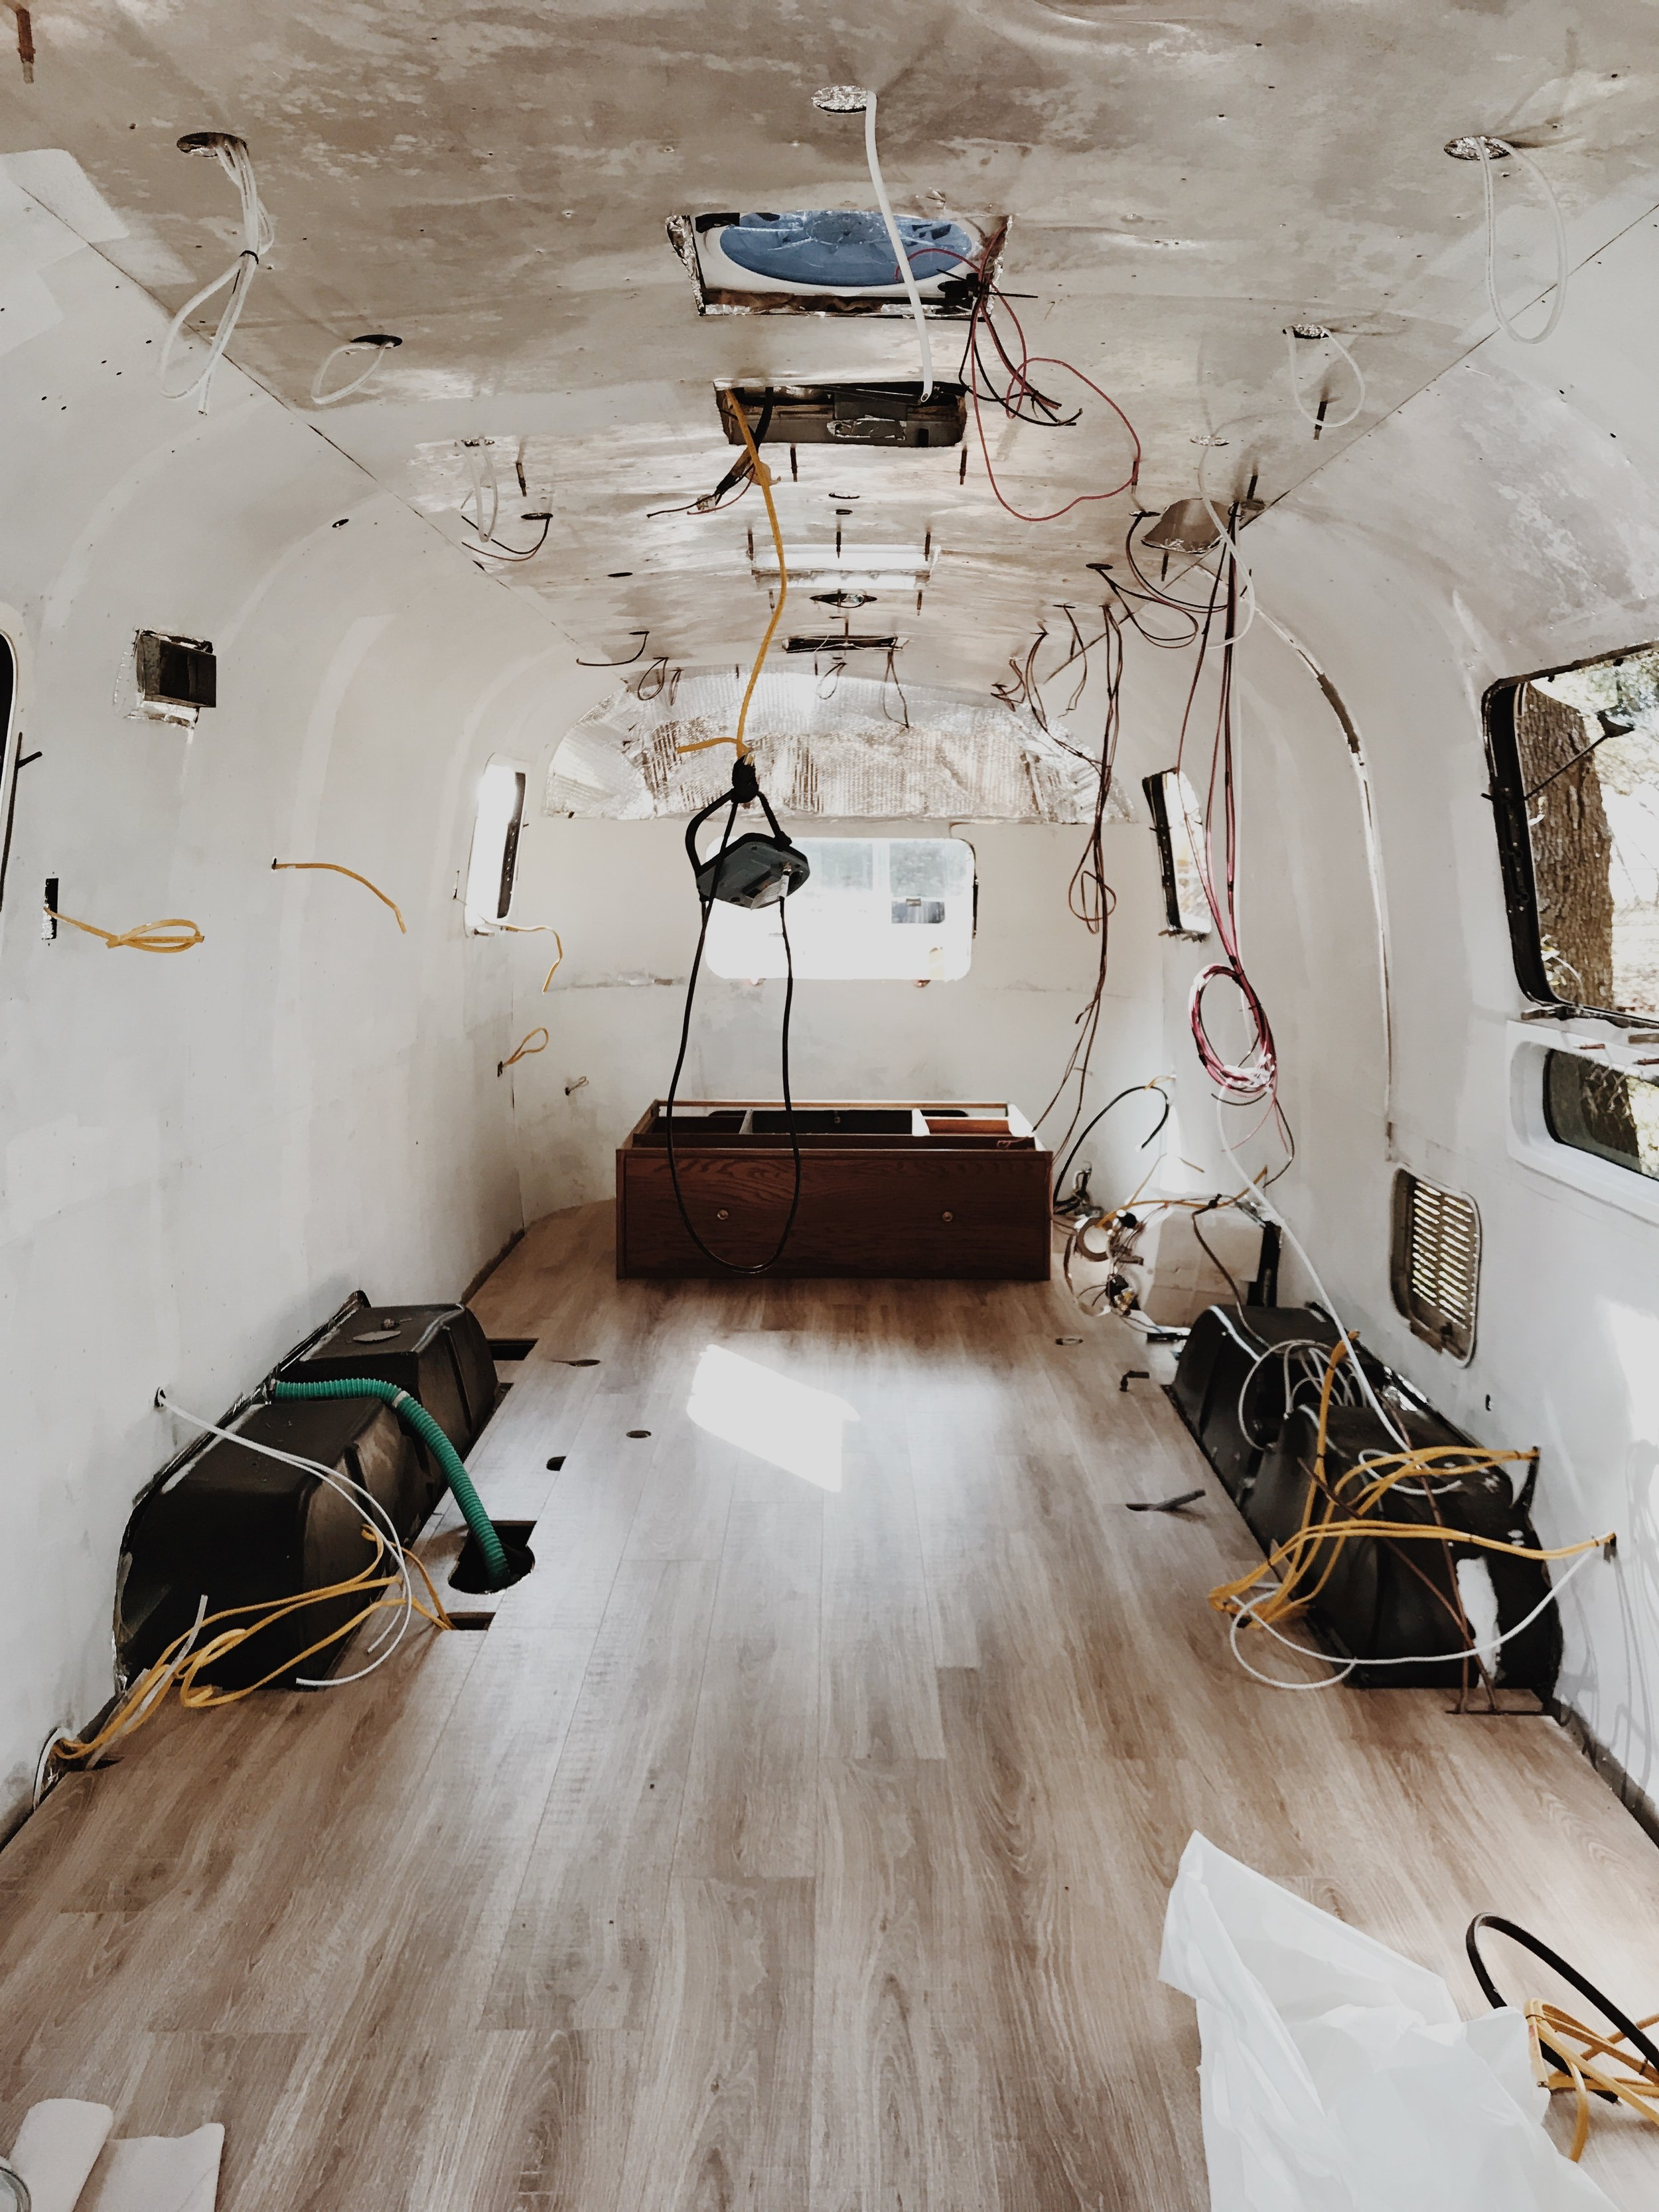 What our Airstream looked like the day we moved in.